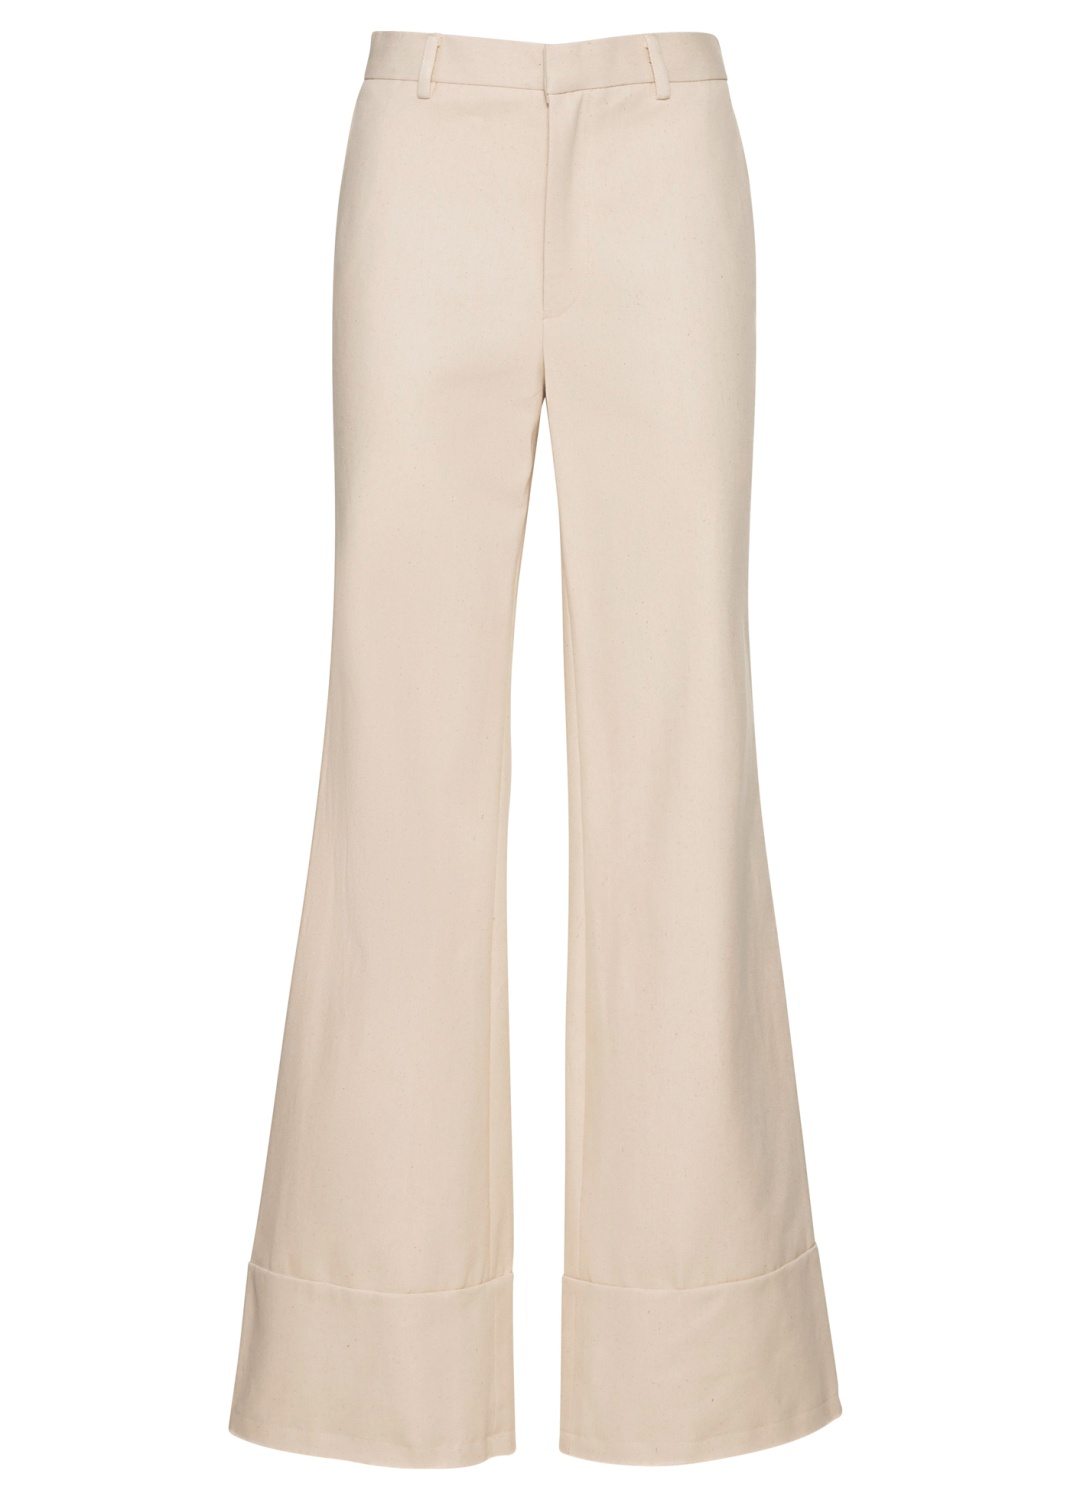 FLARE PANTS image number 0